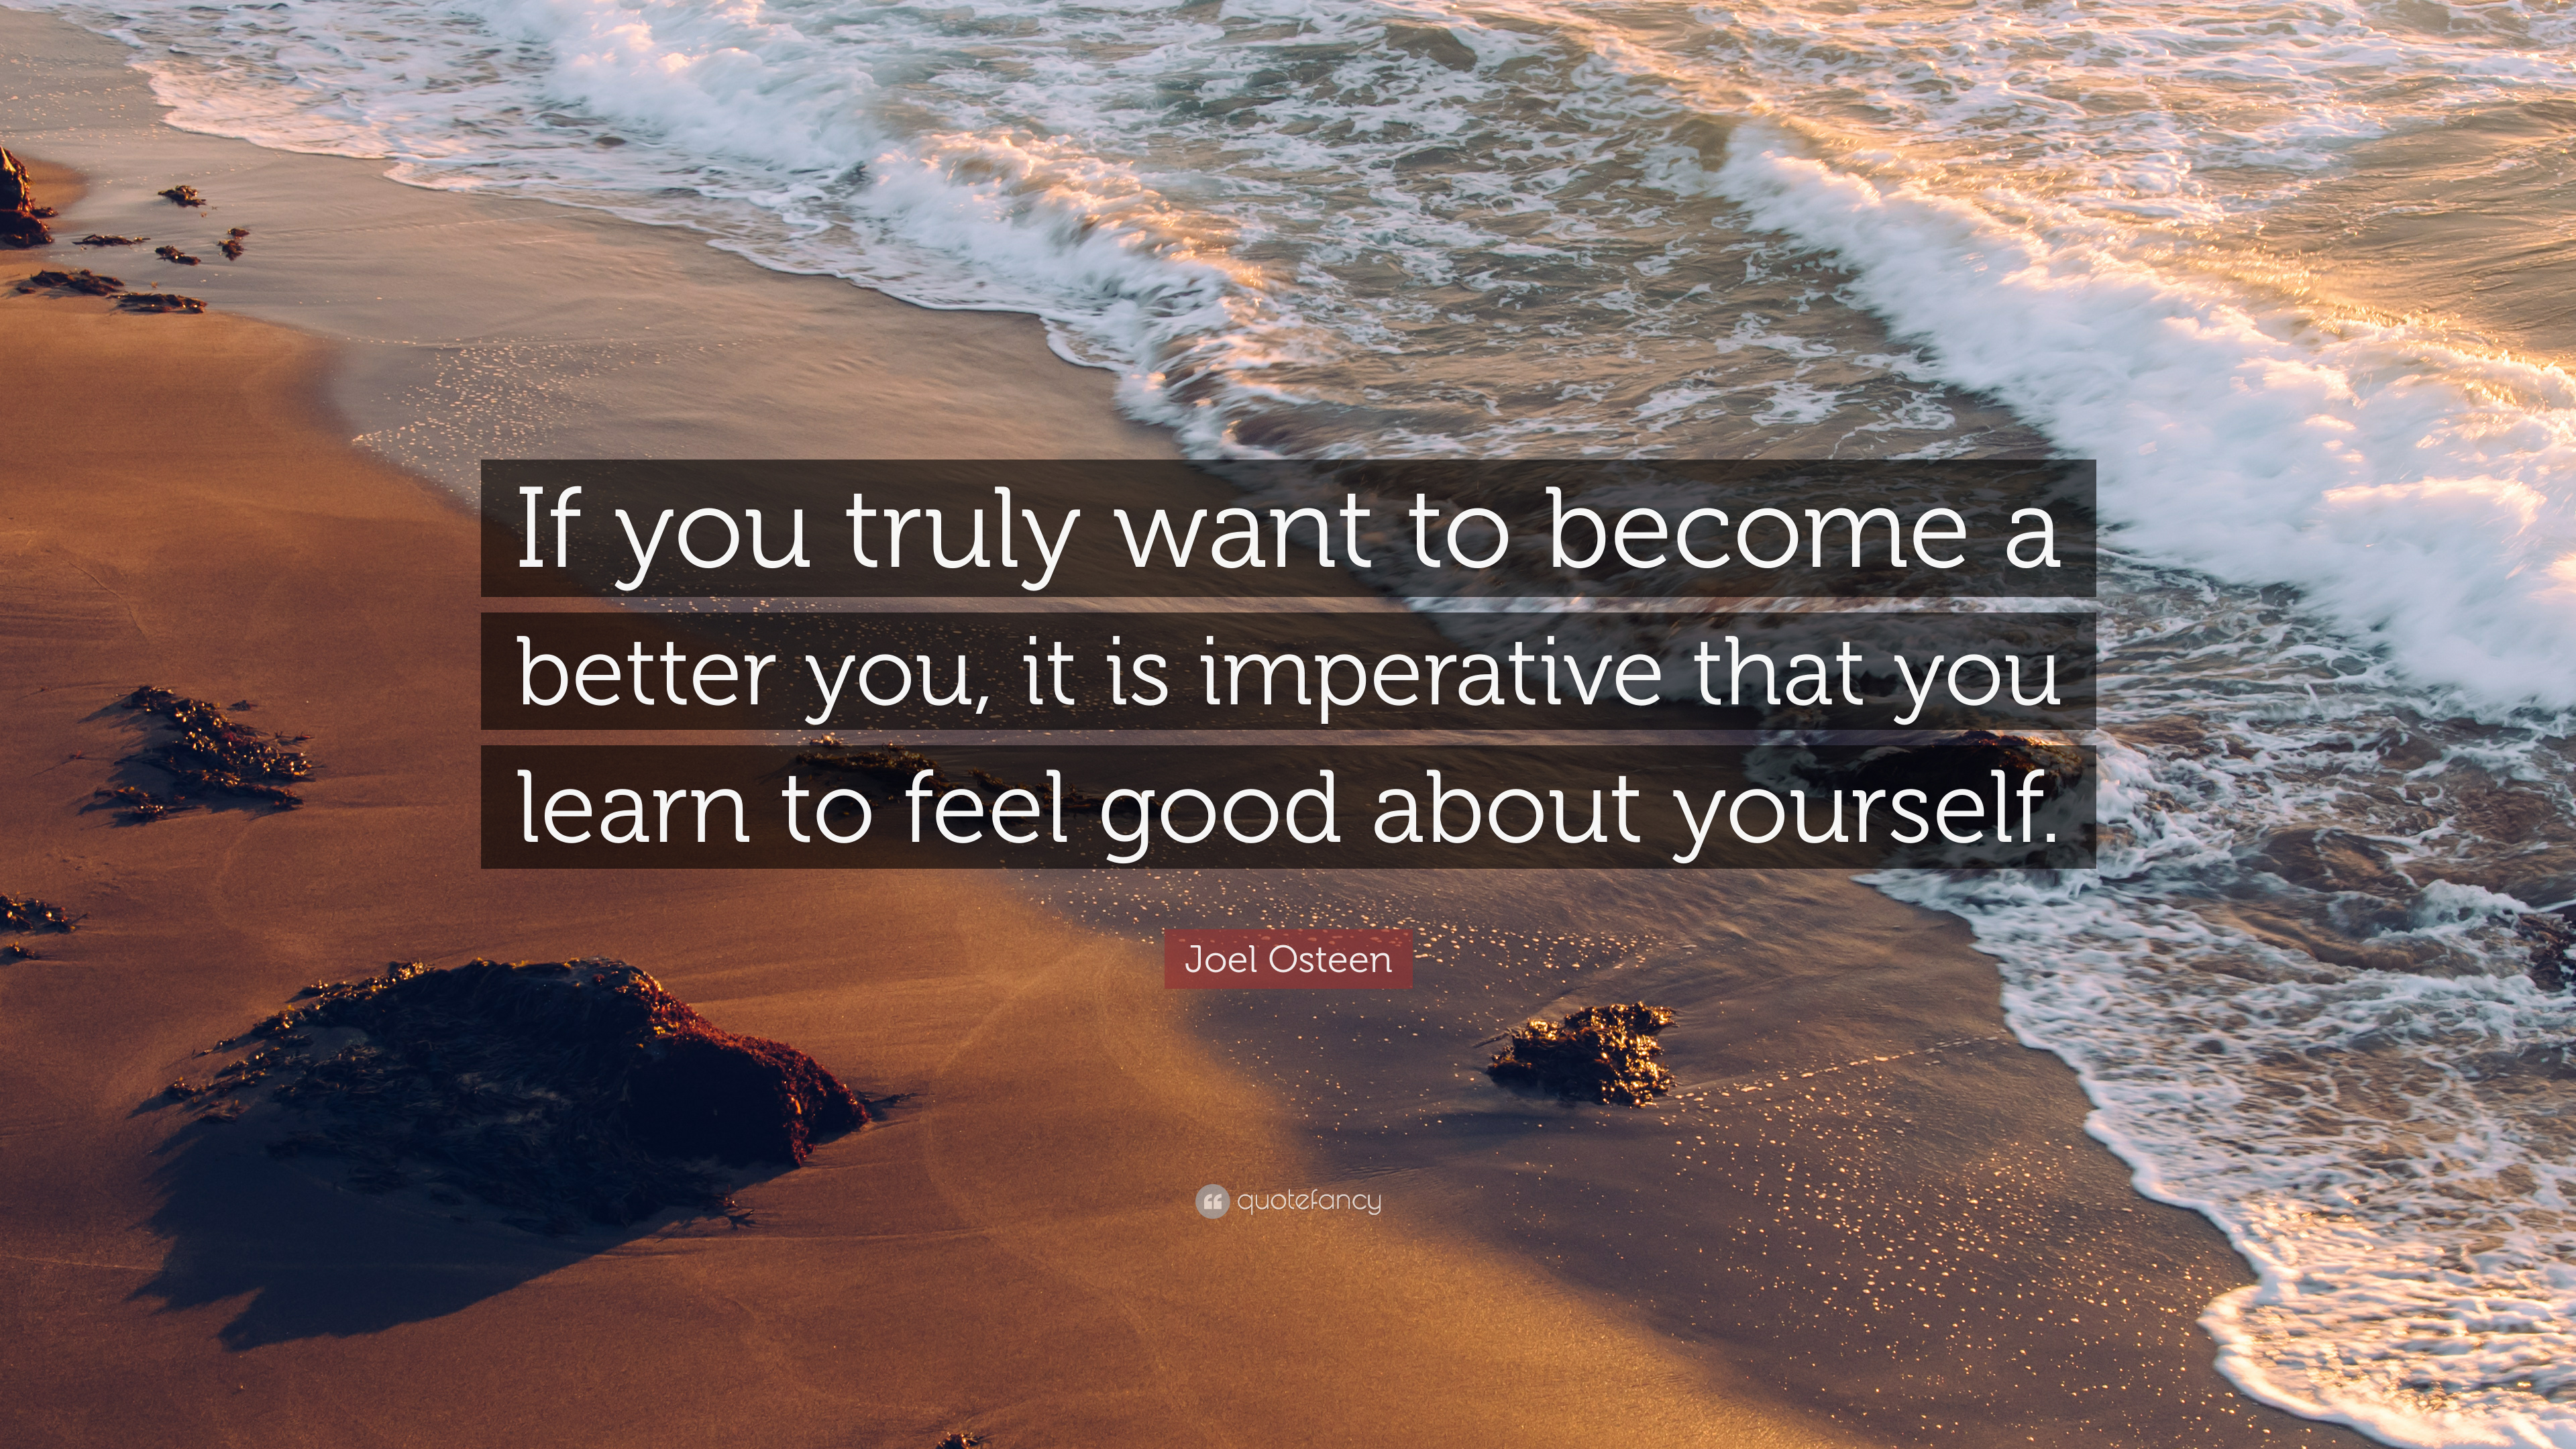 Joel Osteen Quote If You Truly Want To Become A Better You It Is